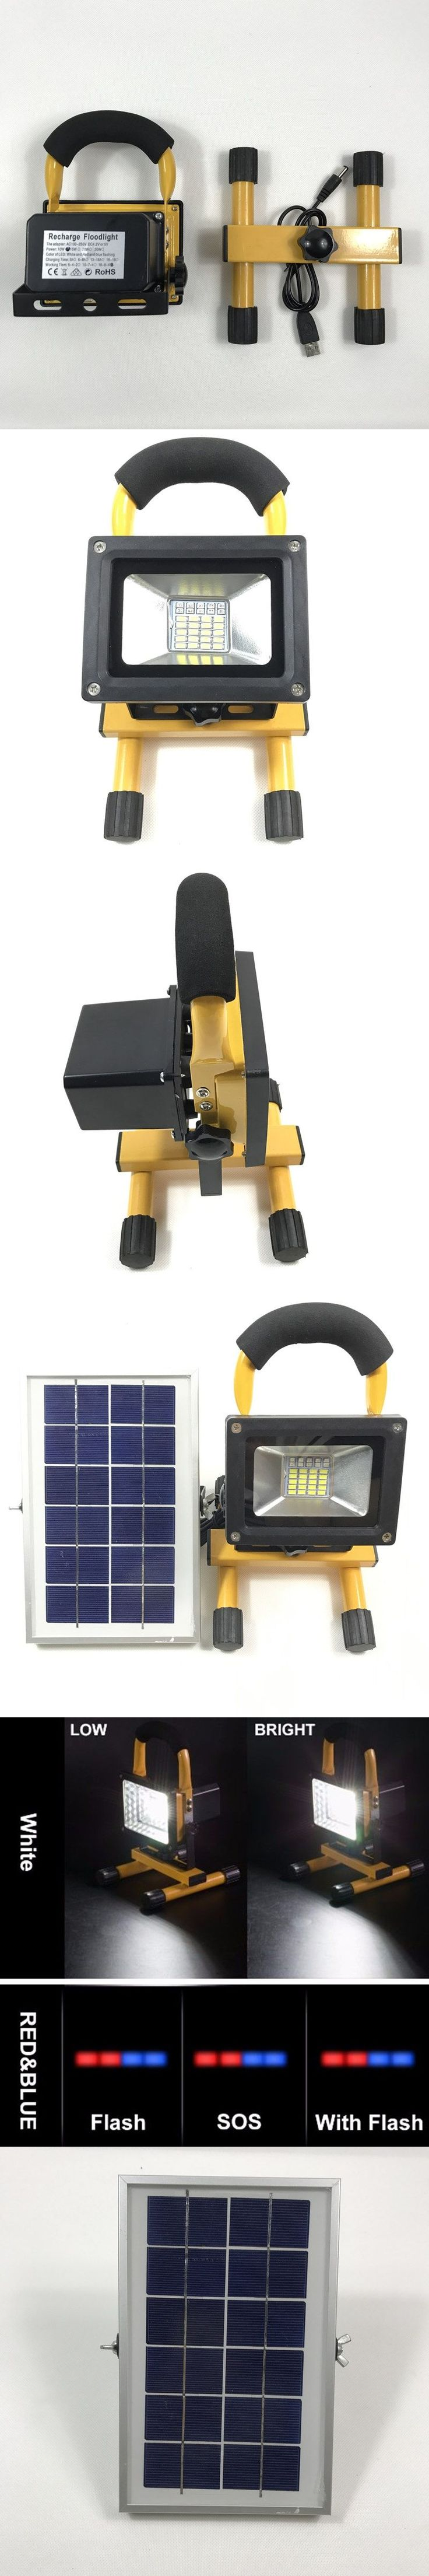 Waterproof IP65 Rechargeable Solar LED Portable Lanterns Rechargeable LED Work SOS Emergency light 4Modes Outdoor Camping Lights